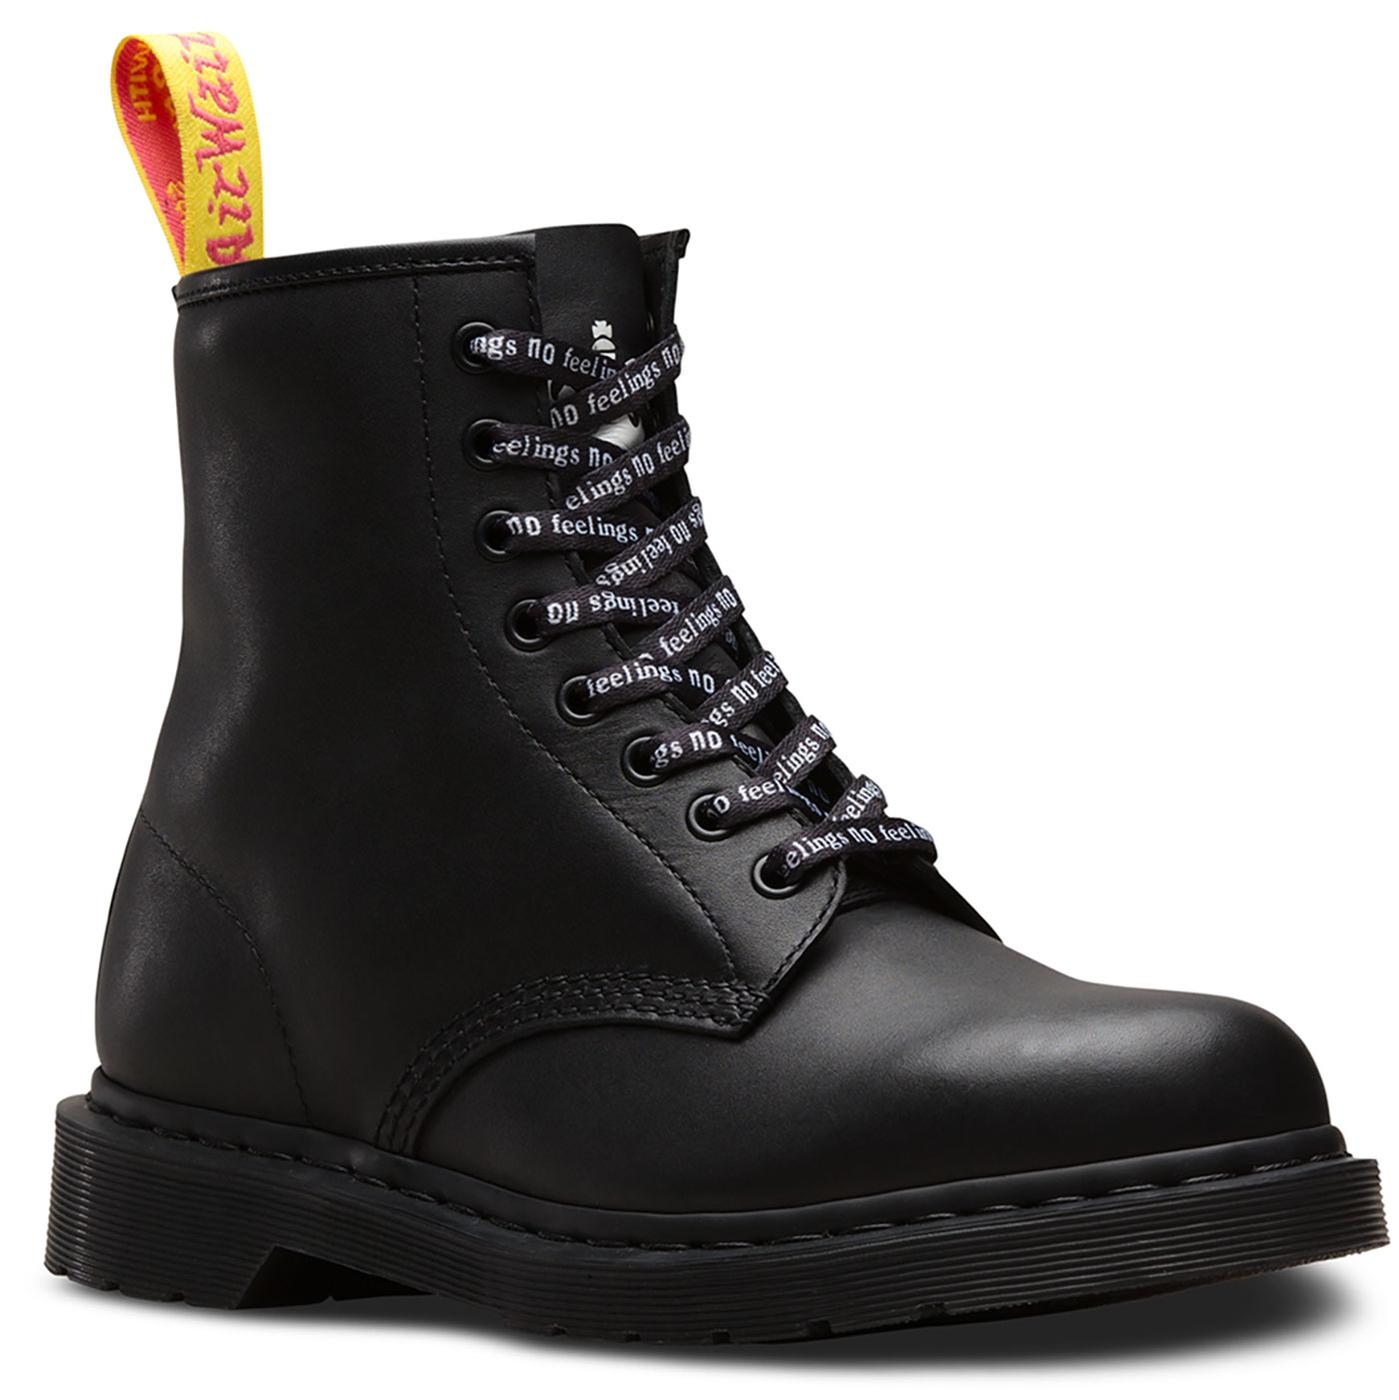 No Future DR MARTENS x SEX PISTOLS 1460 Punk Boots